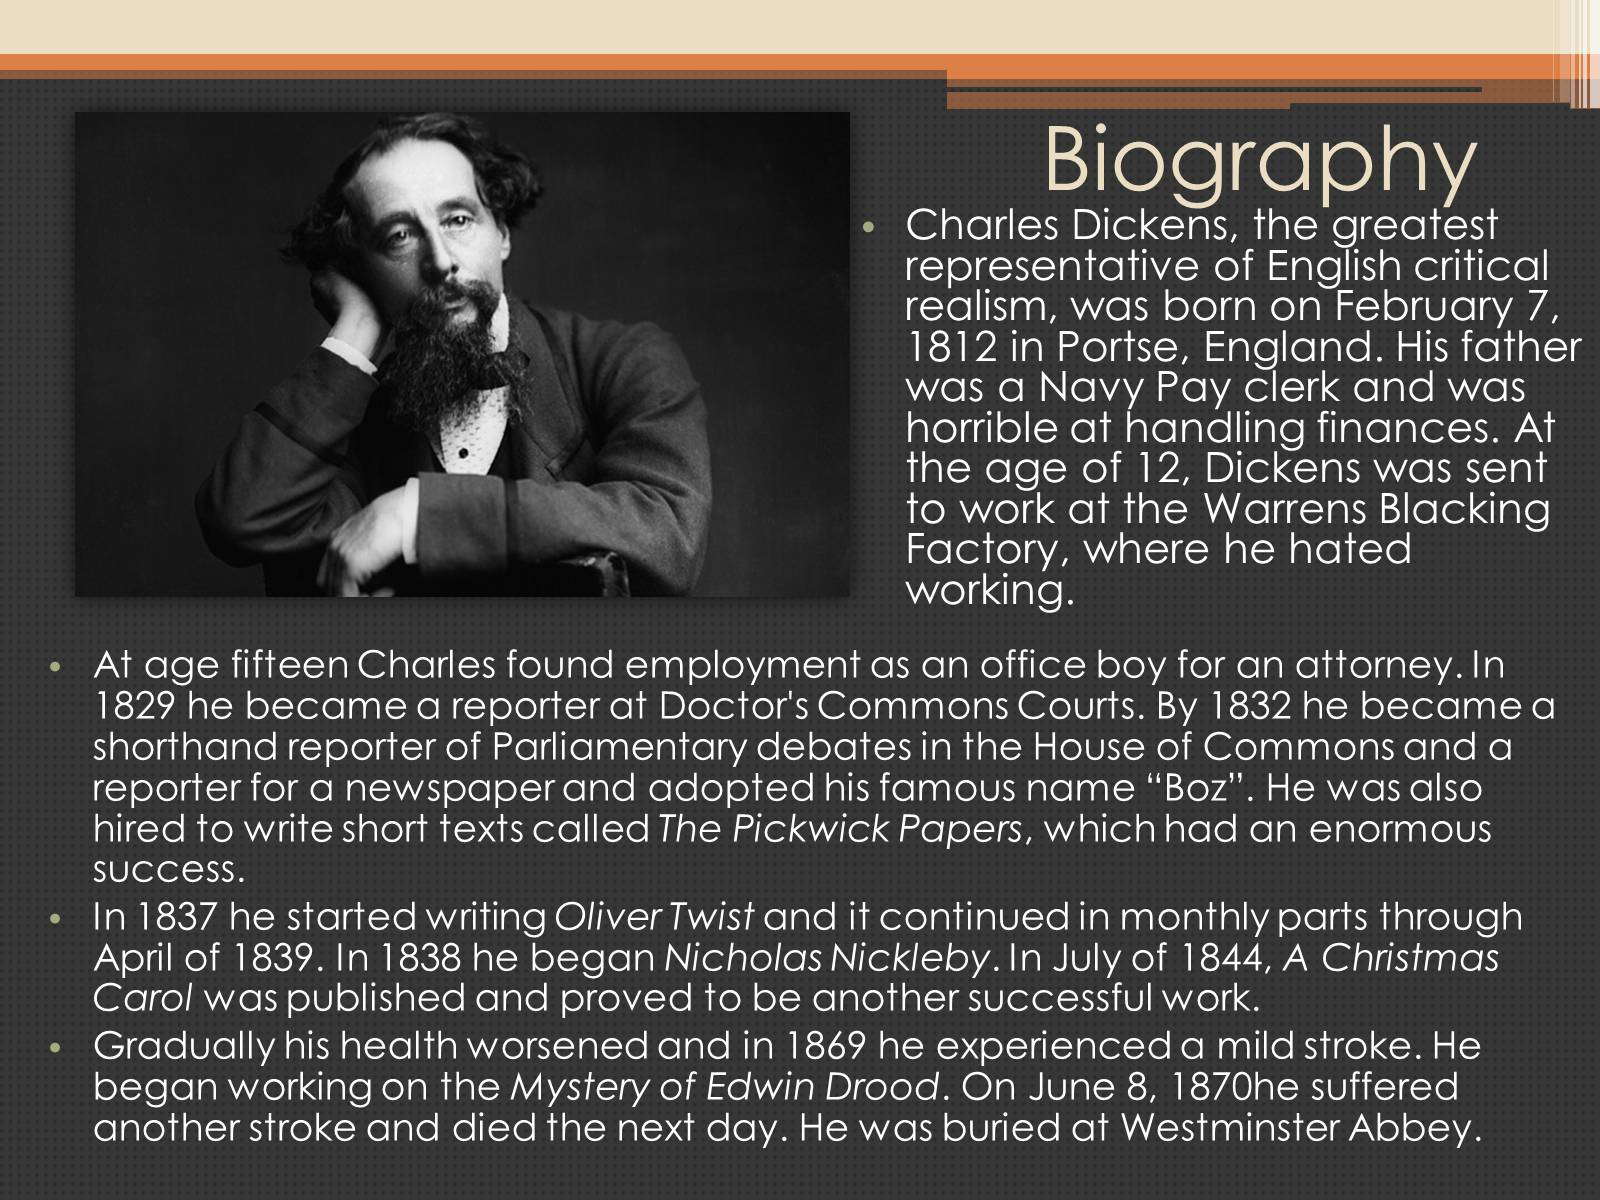 biography of charles dickens Most of of charles dickens' novels were written in an episodic manner, reflecting their publication as serial fiction it was a short biography of jesus christ however, dickens also criticized aspects of organized religion, and viewed religious hypocrisy as contradictory to the true spirit of christianity.